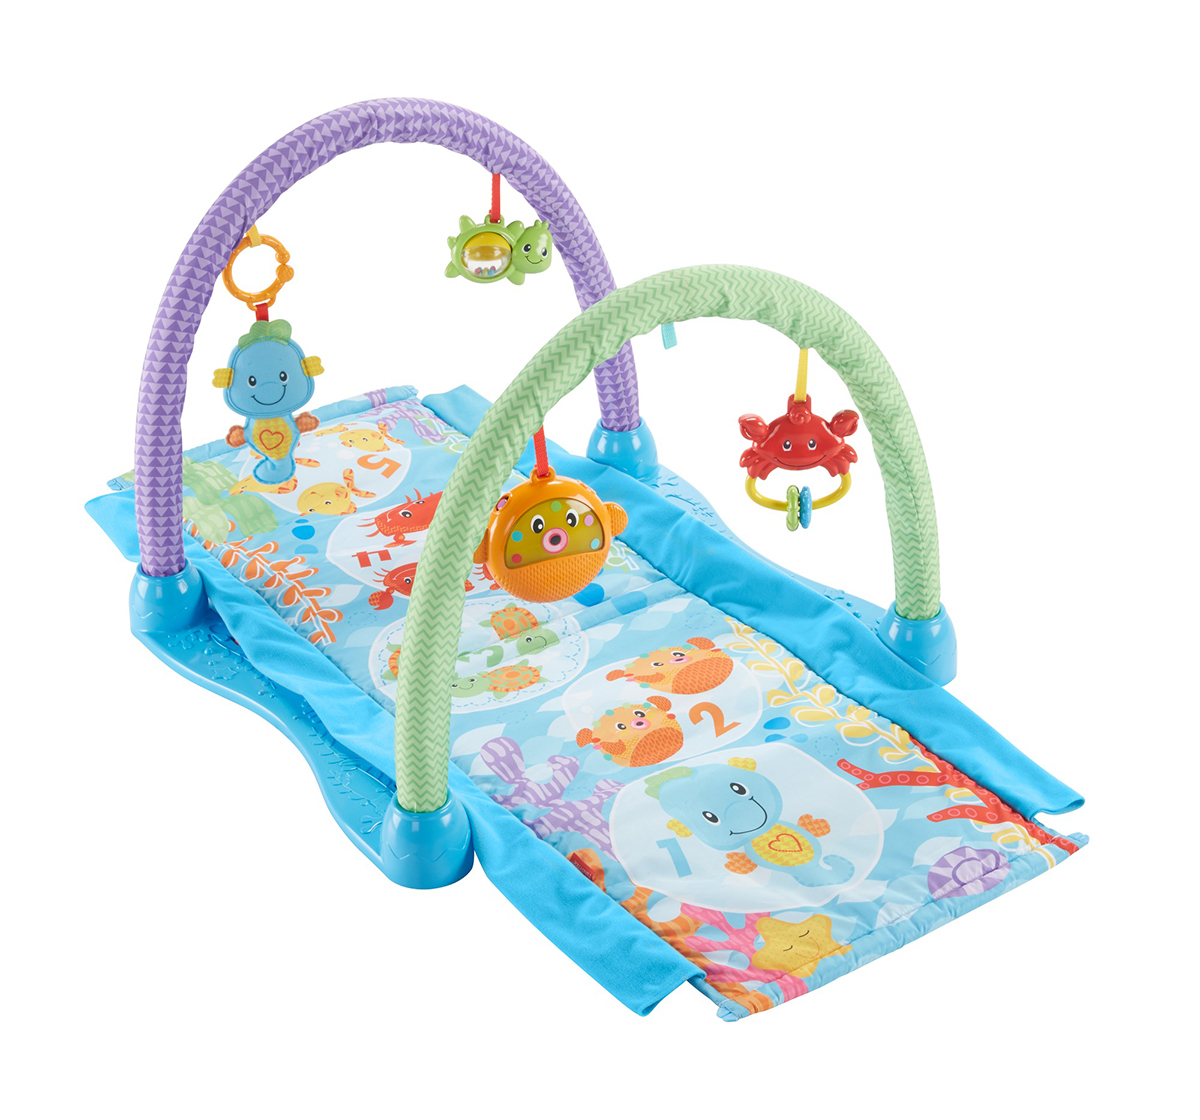 Fisher-Price | Fisher price Kick And Crawl Musical Seahorse Gym Baby Gear for Kids age 0M+